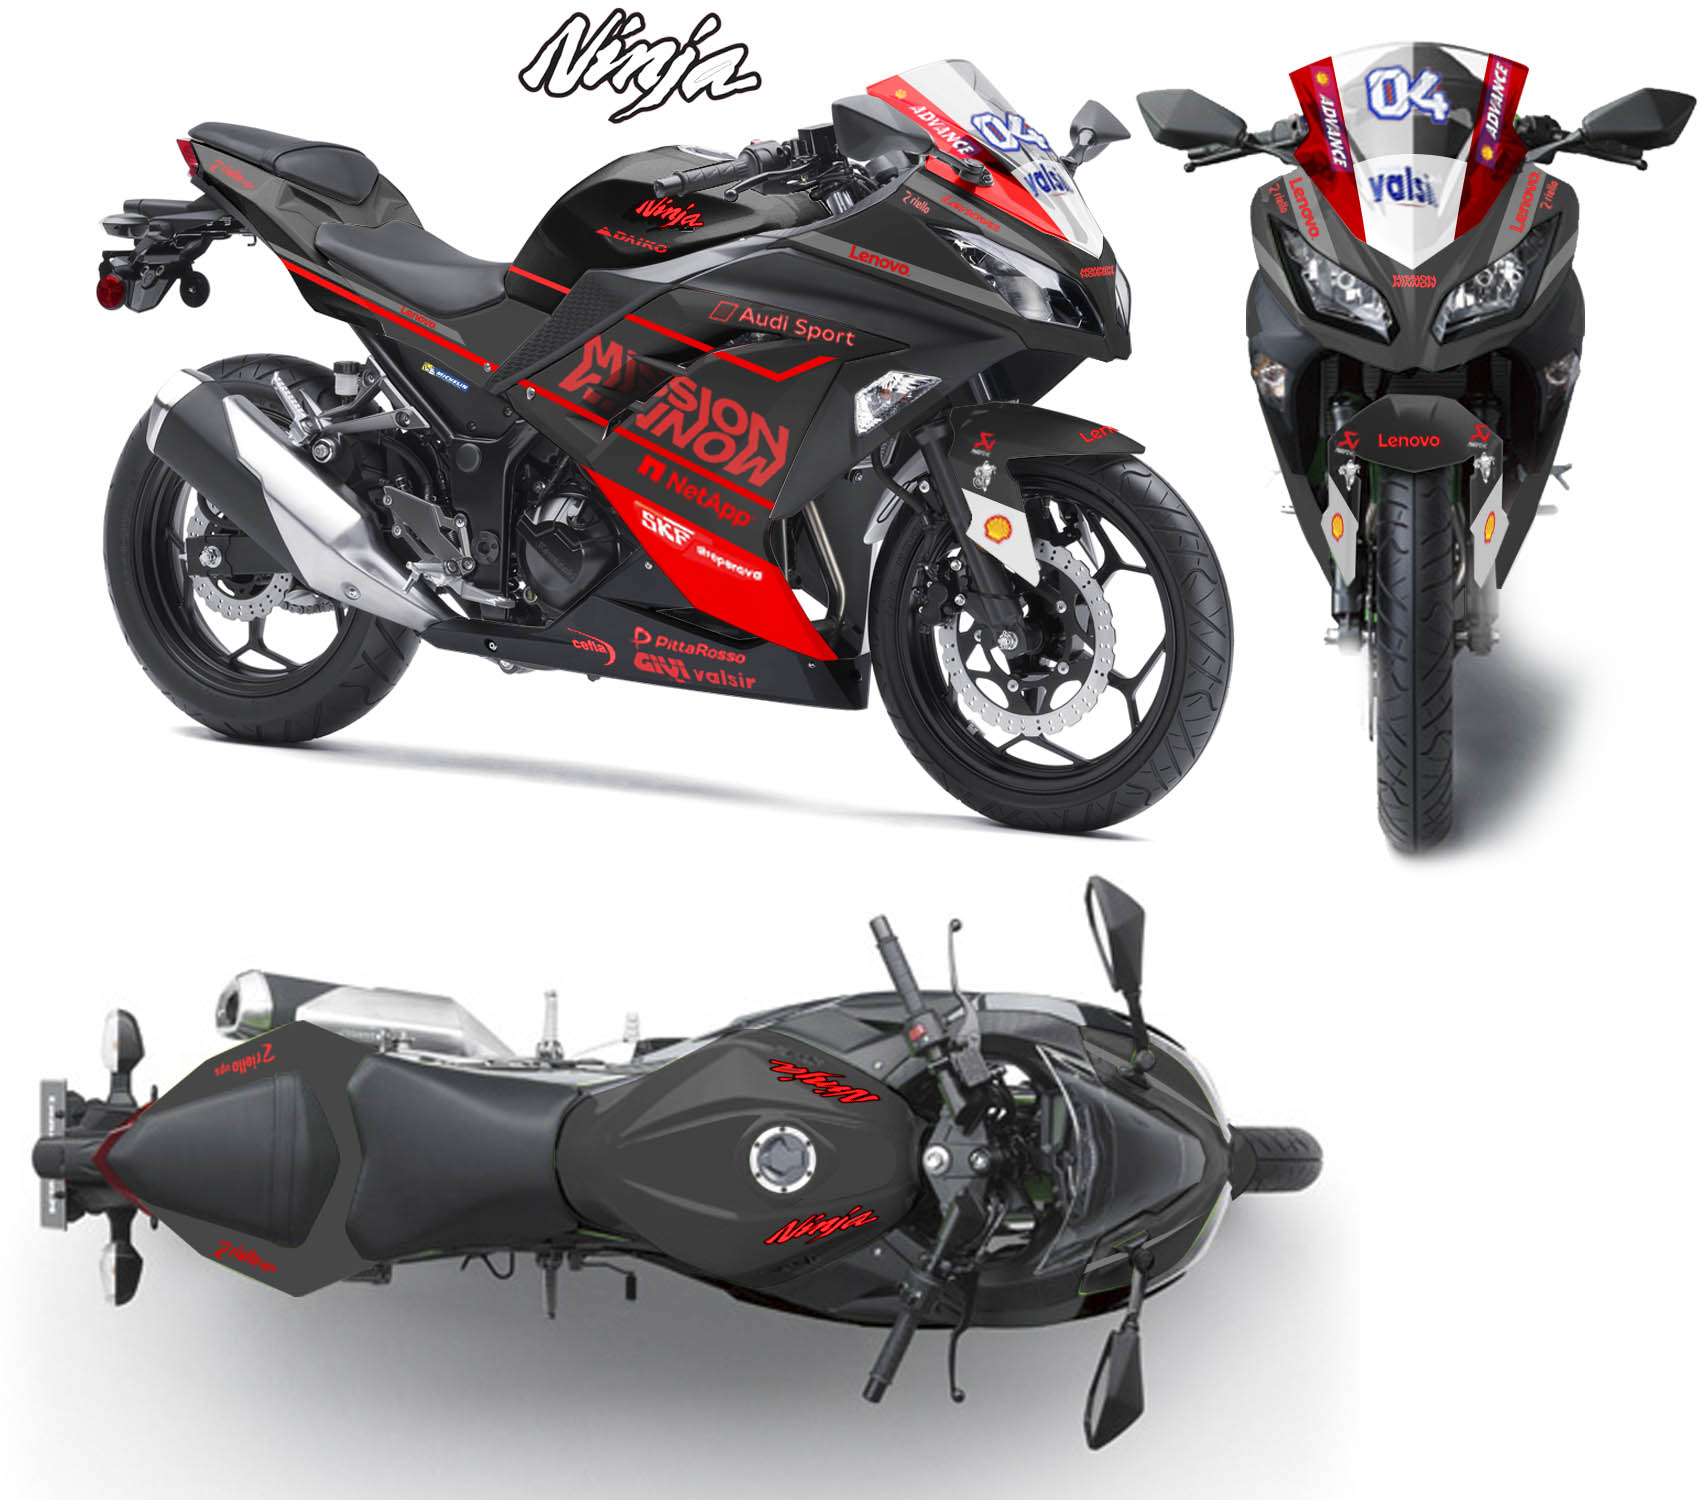 Modifikasi striping Kawasaki Ninja 250R Fi Mission Winnow Black red